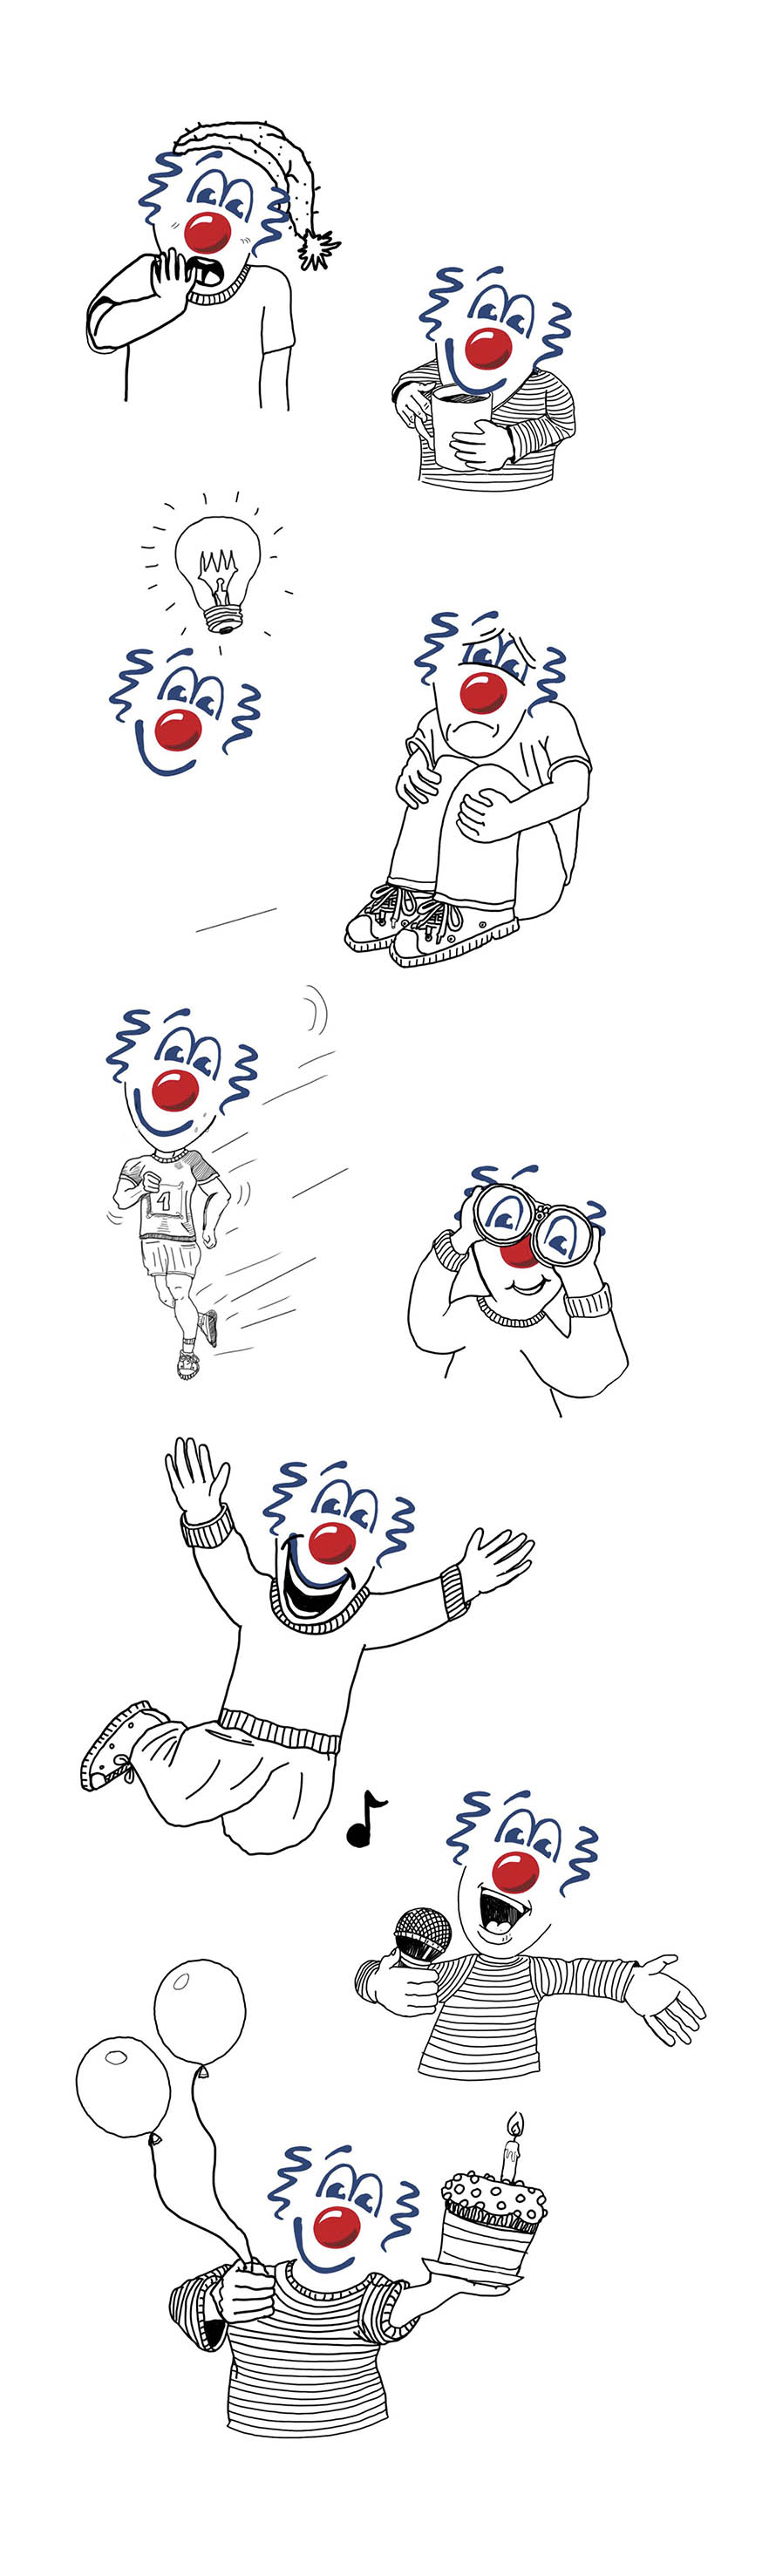 Red Noses International Clowns Face